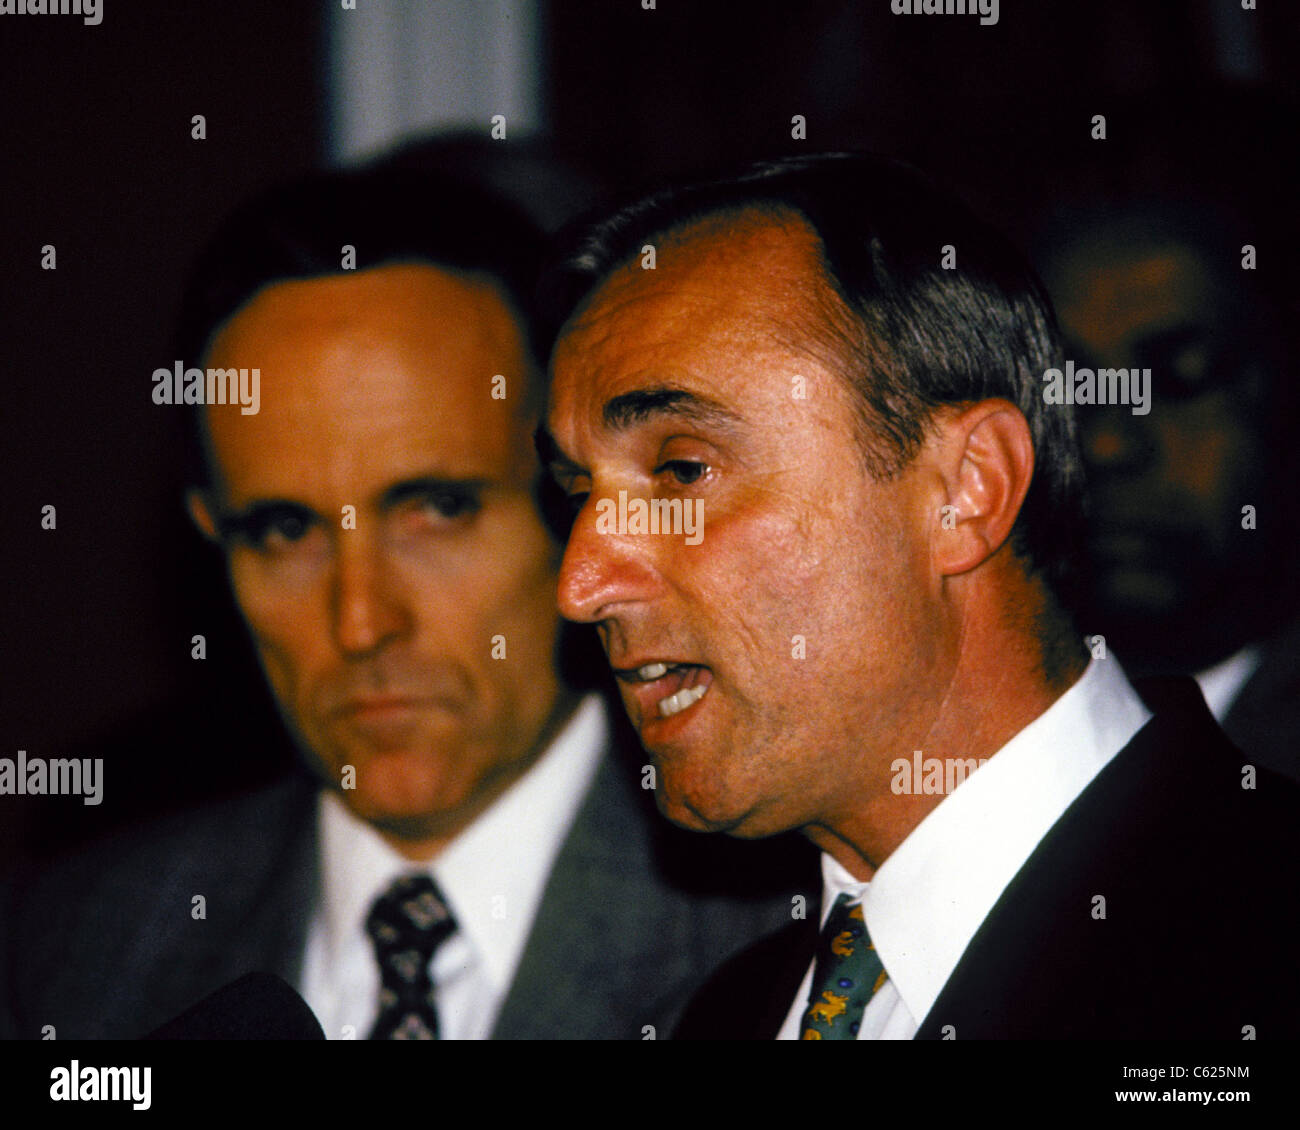 Police Comm. William Bratton appears with Mayor Rudy Giuliani at a news conference - Stock Image